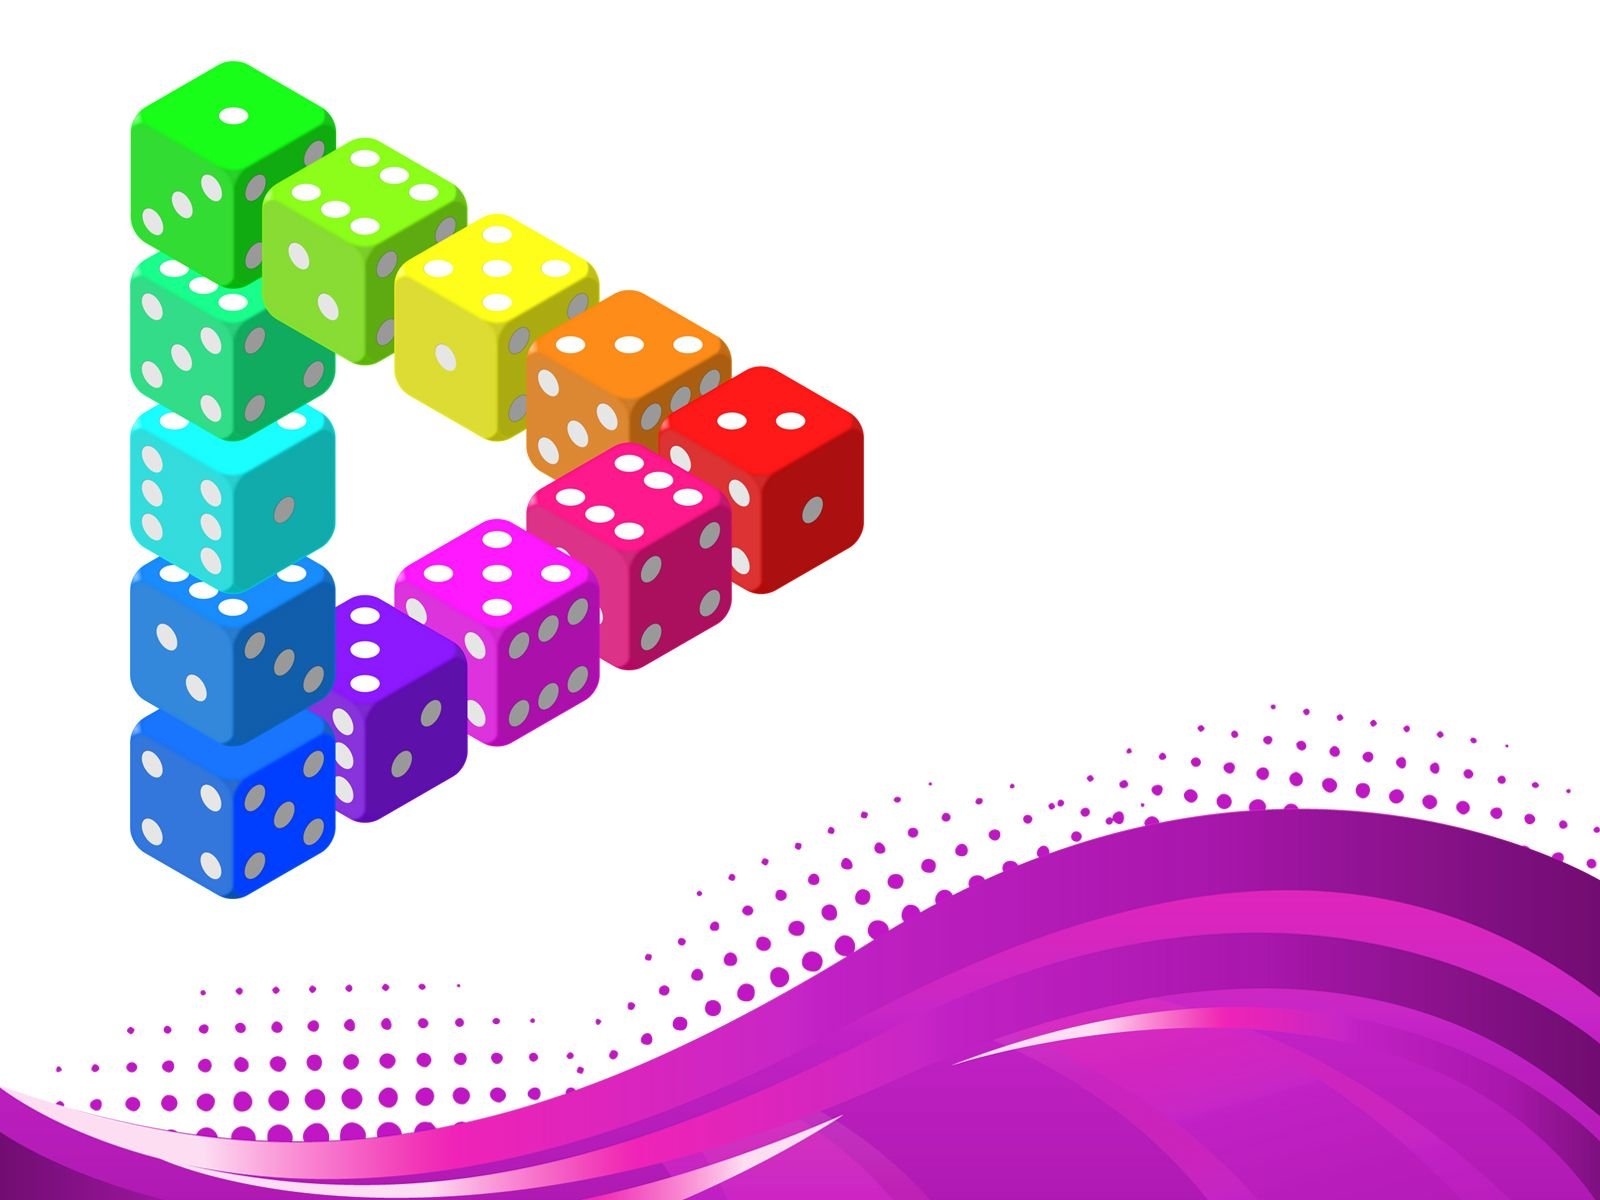 Download free 3d dice powerpoint templates containing dices with microsoft powerpoint 2007 download free 3d dice powerpoint templates containing dices with multi color in the slide design and alramifo Choice Image